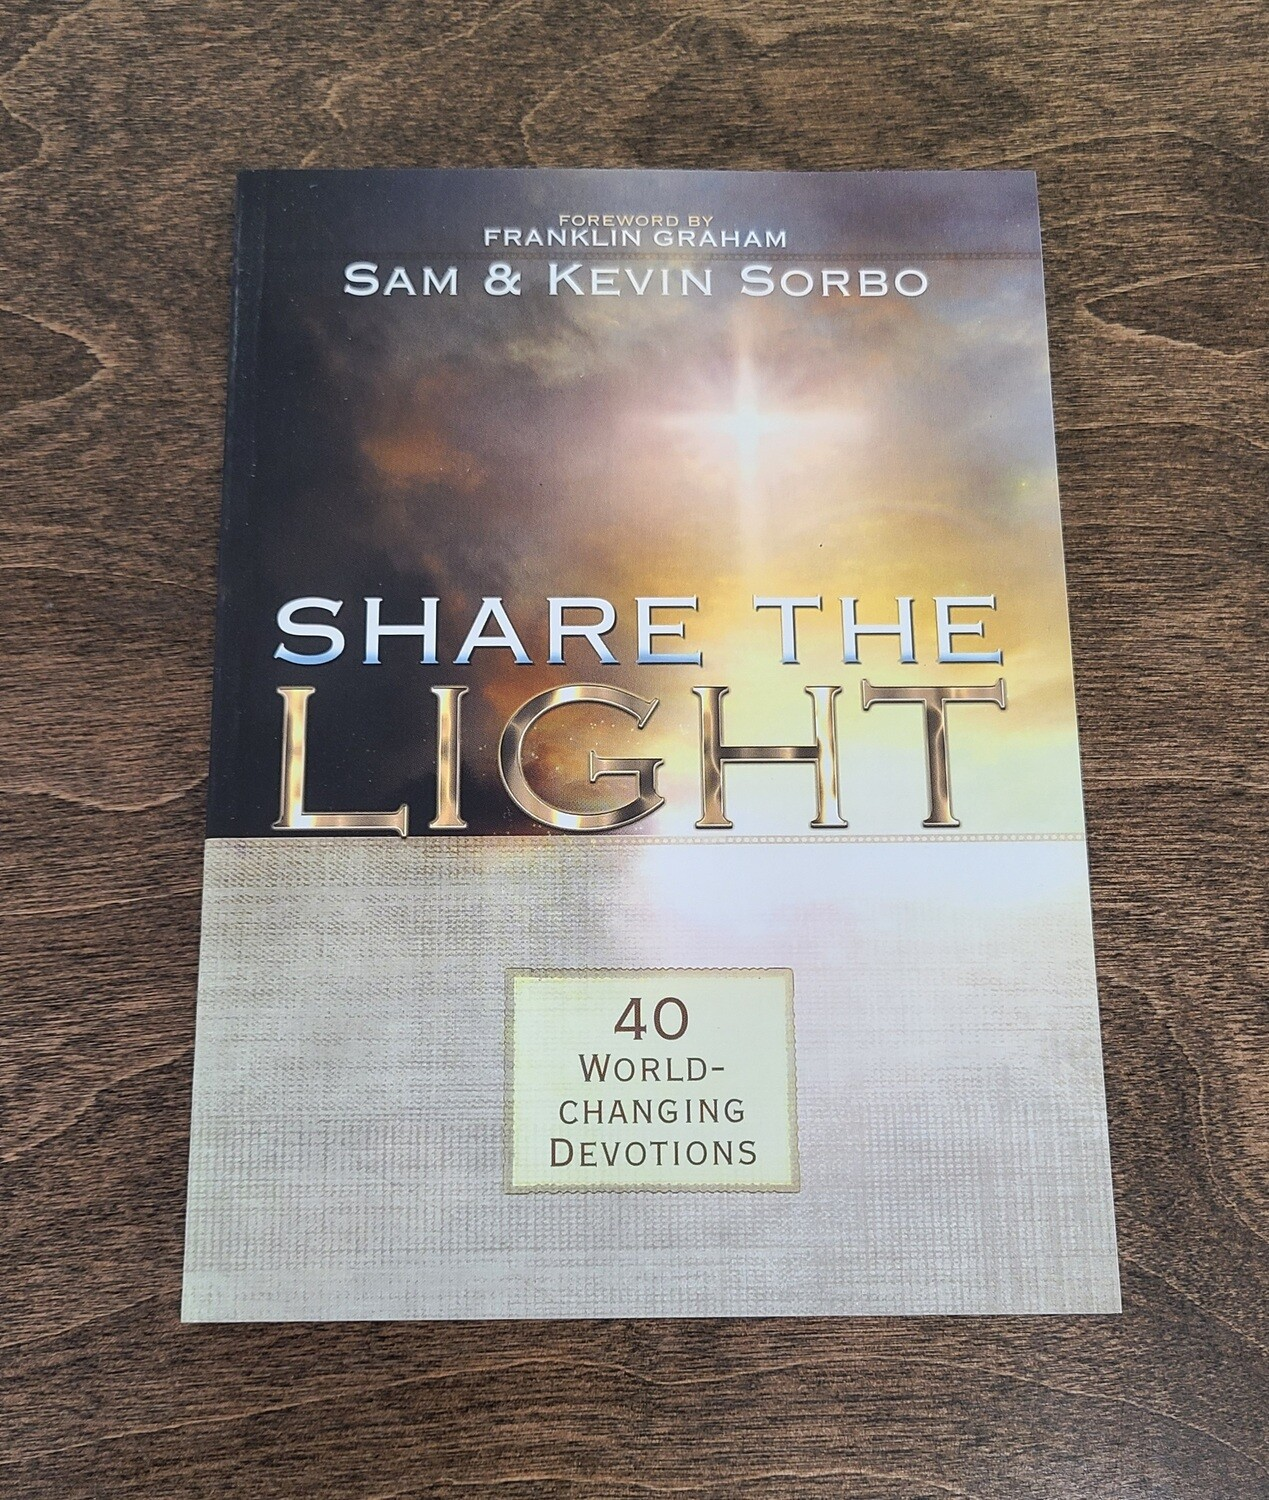 Share the Light by Sam and Kevin Sorbo